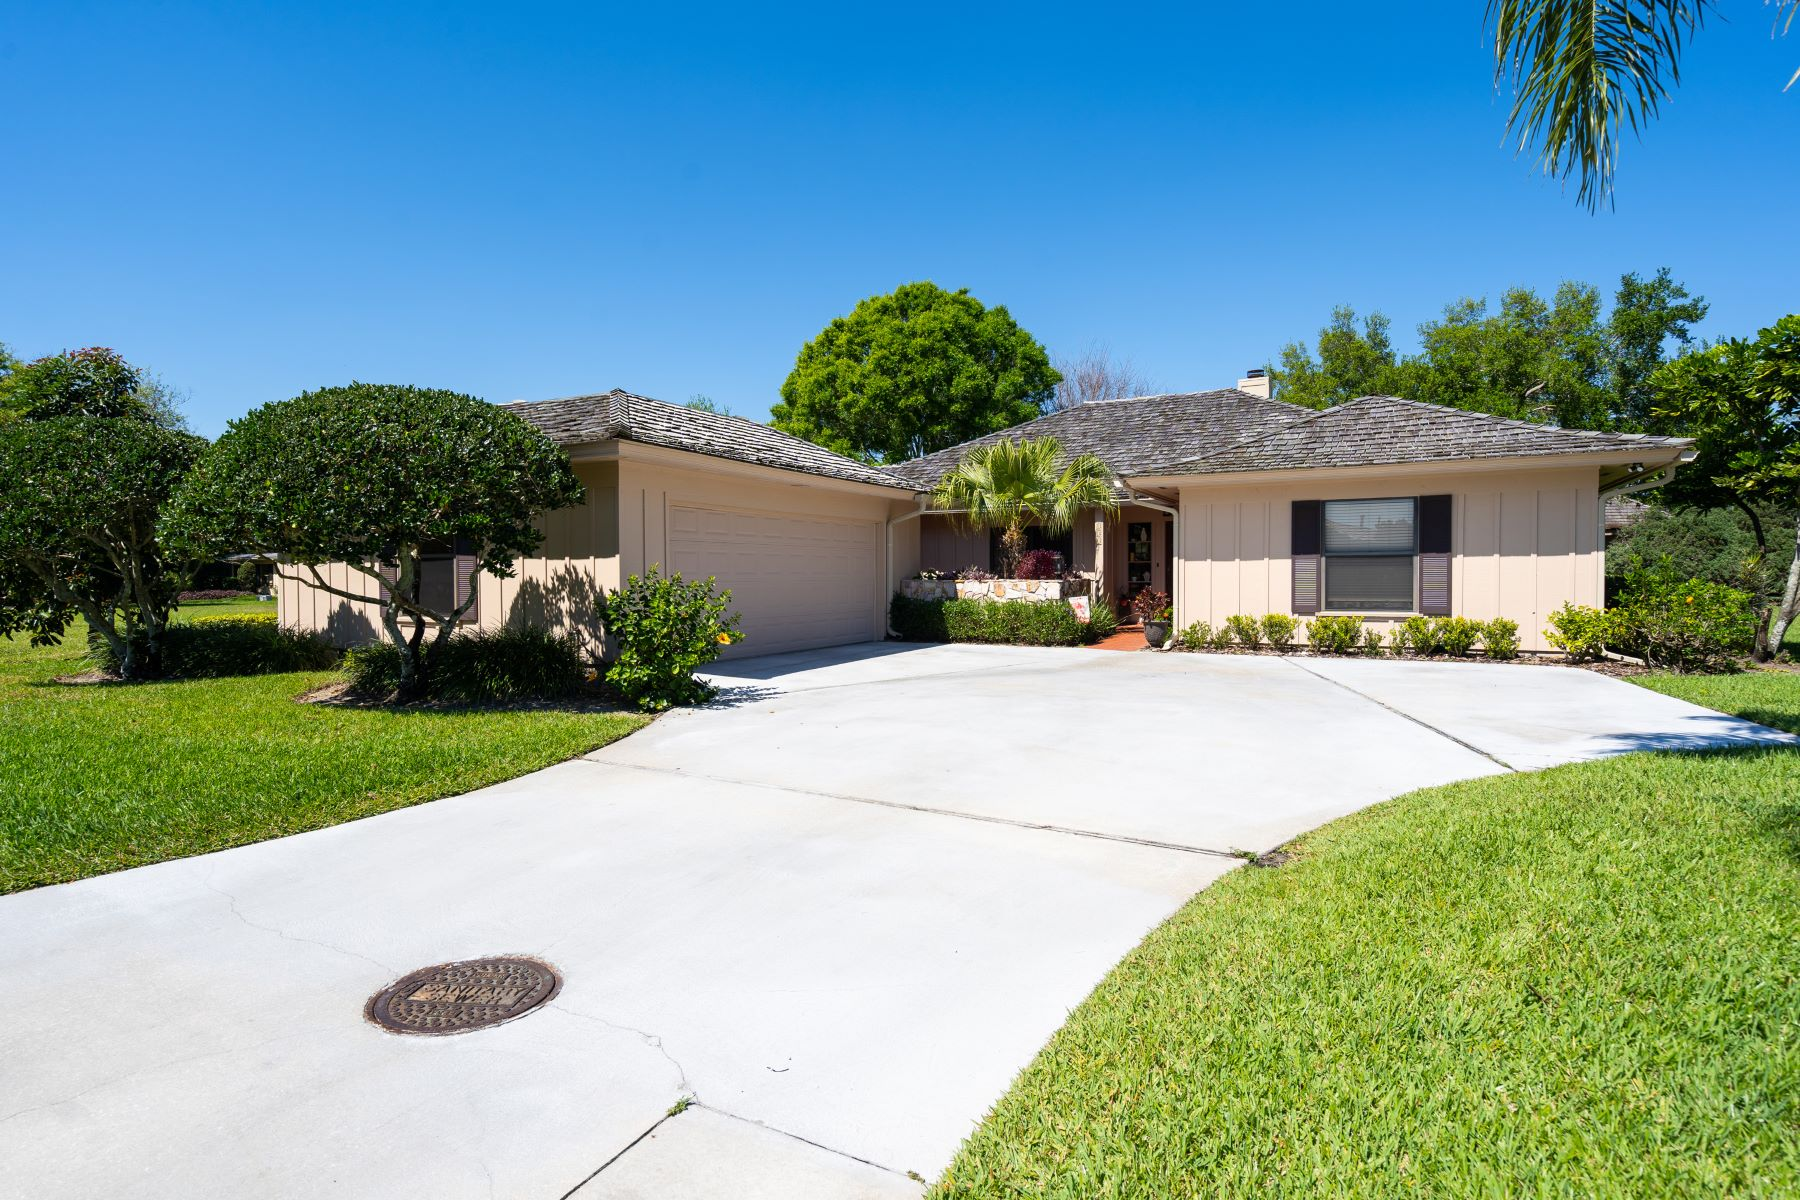 Single Family Homes のために 売買 アット Spacious Golf Villa 131 Prestwick Circle Vero Beach, フロリダ 32967 アメリカ